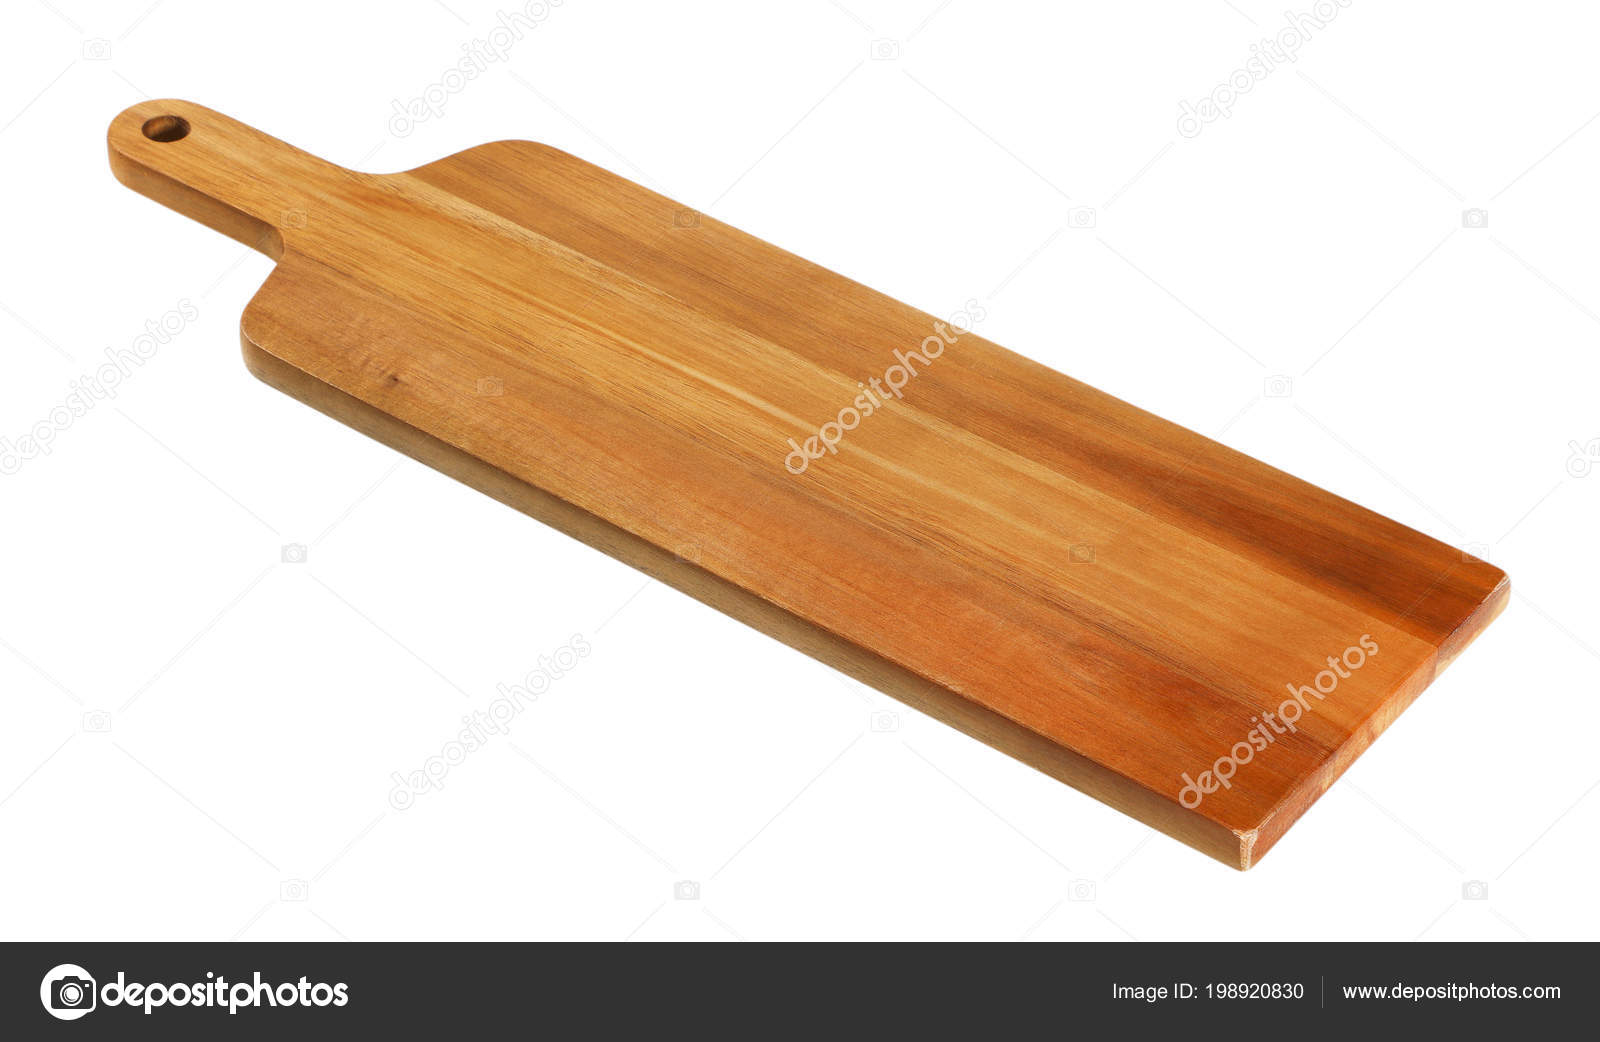 Narrow Wooden Cutting Board Handle White Background Stock Photo C Ajafoto 198920830